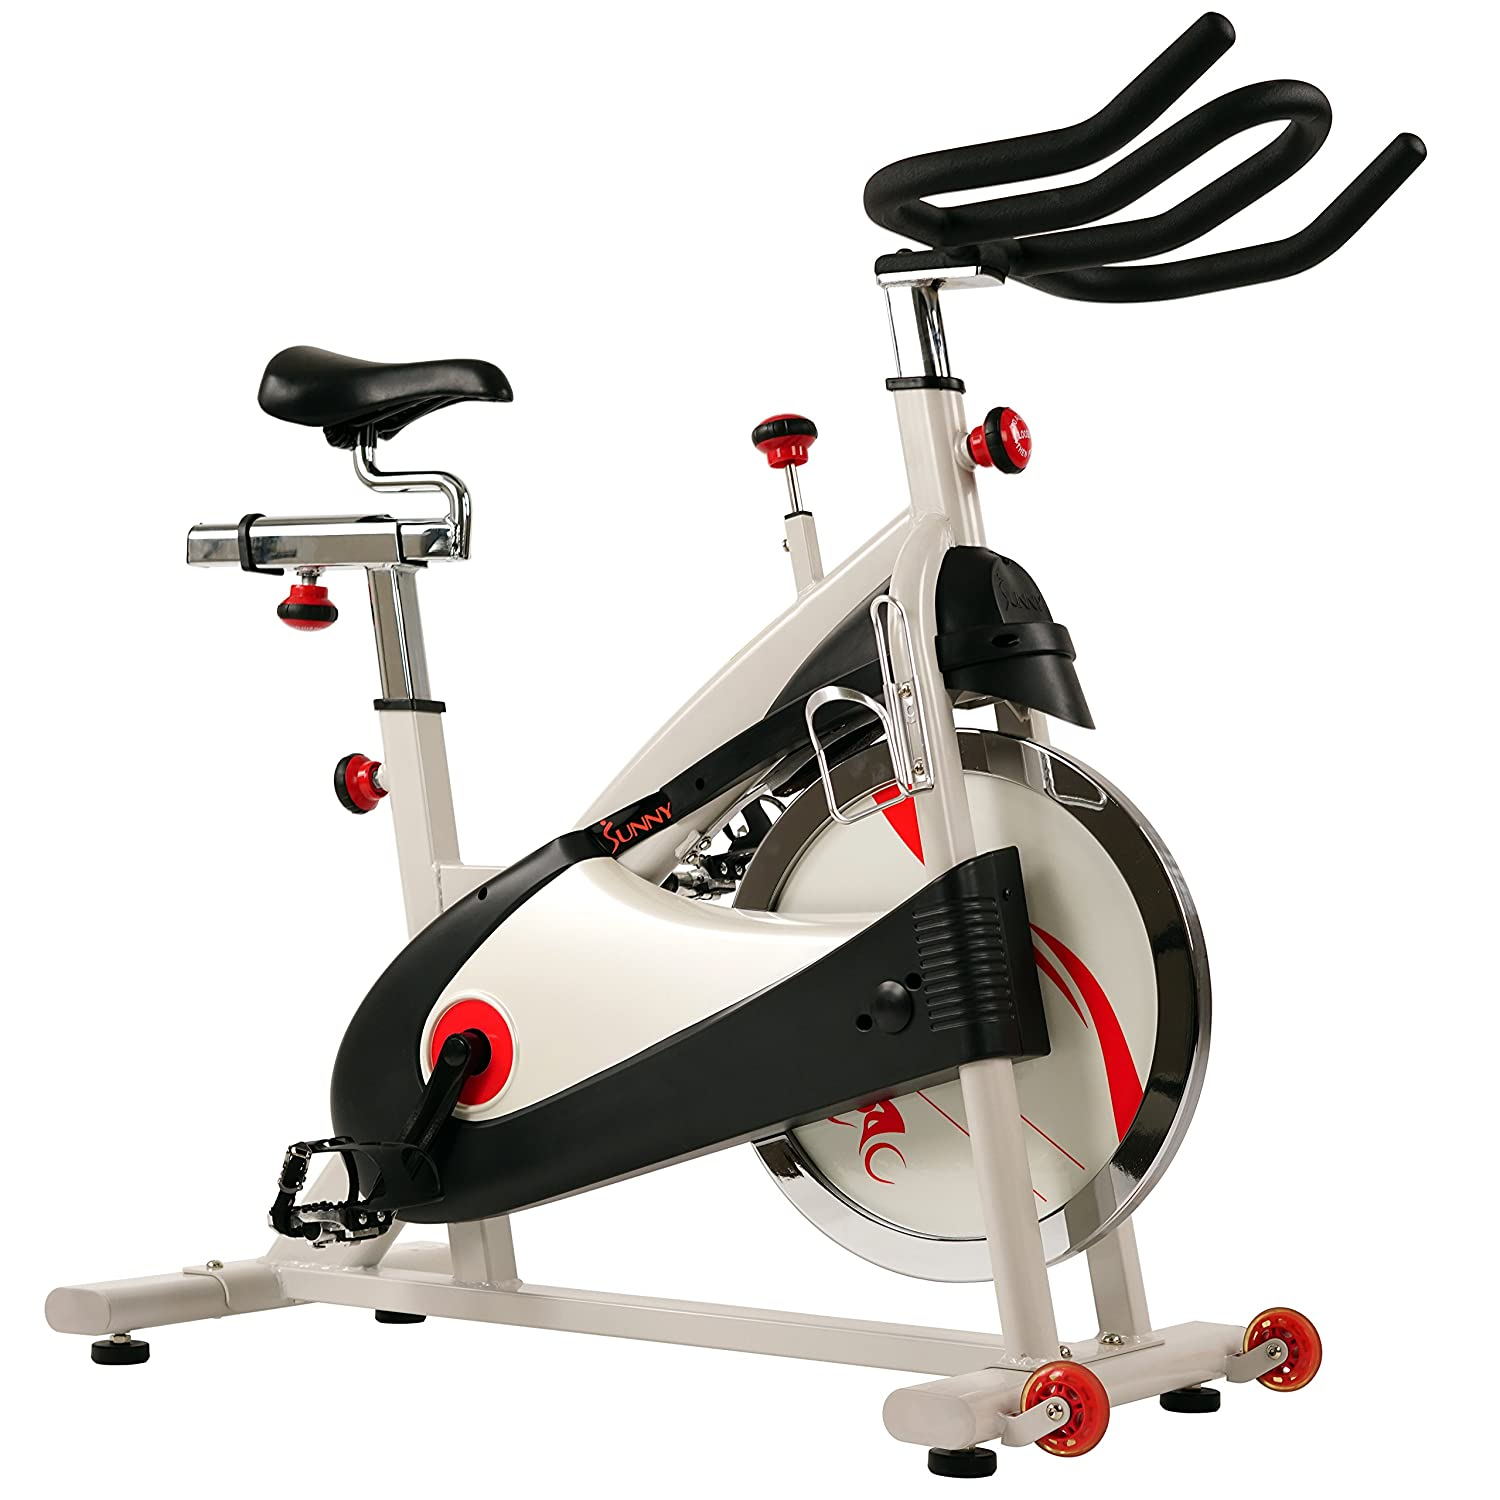 Sunny Health & Fitness Exercise Bike Premium Indoor Cycling